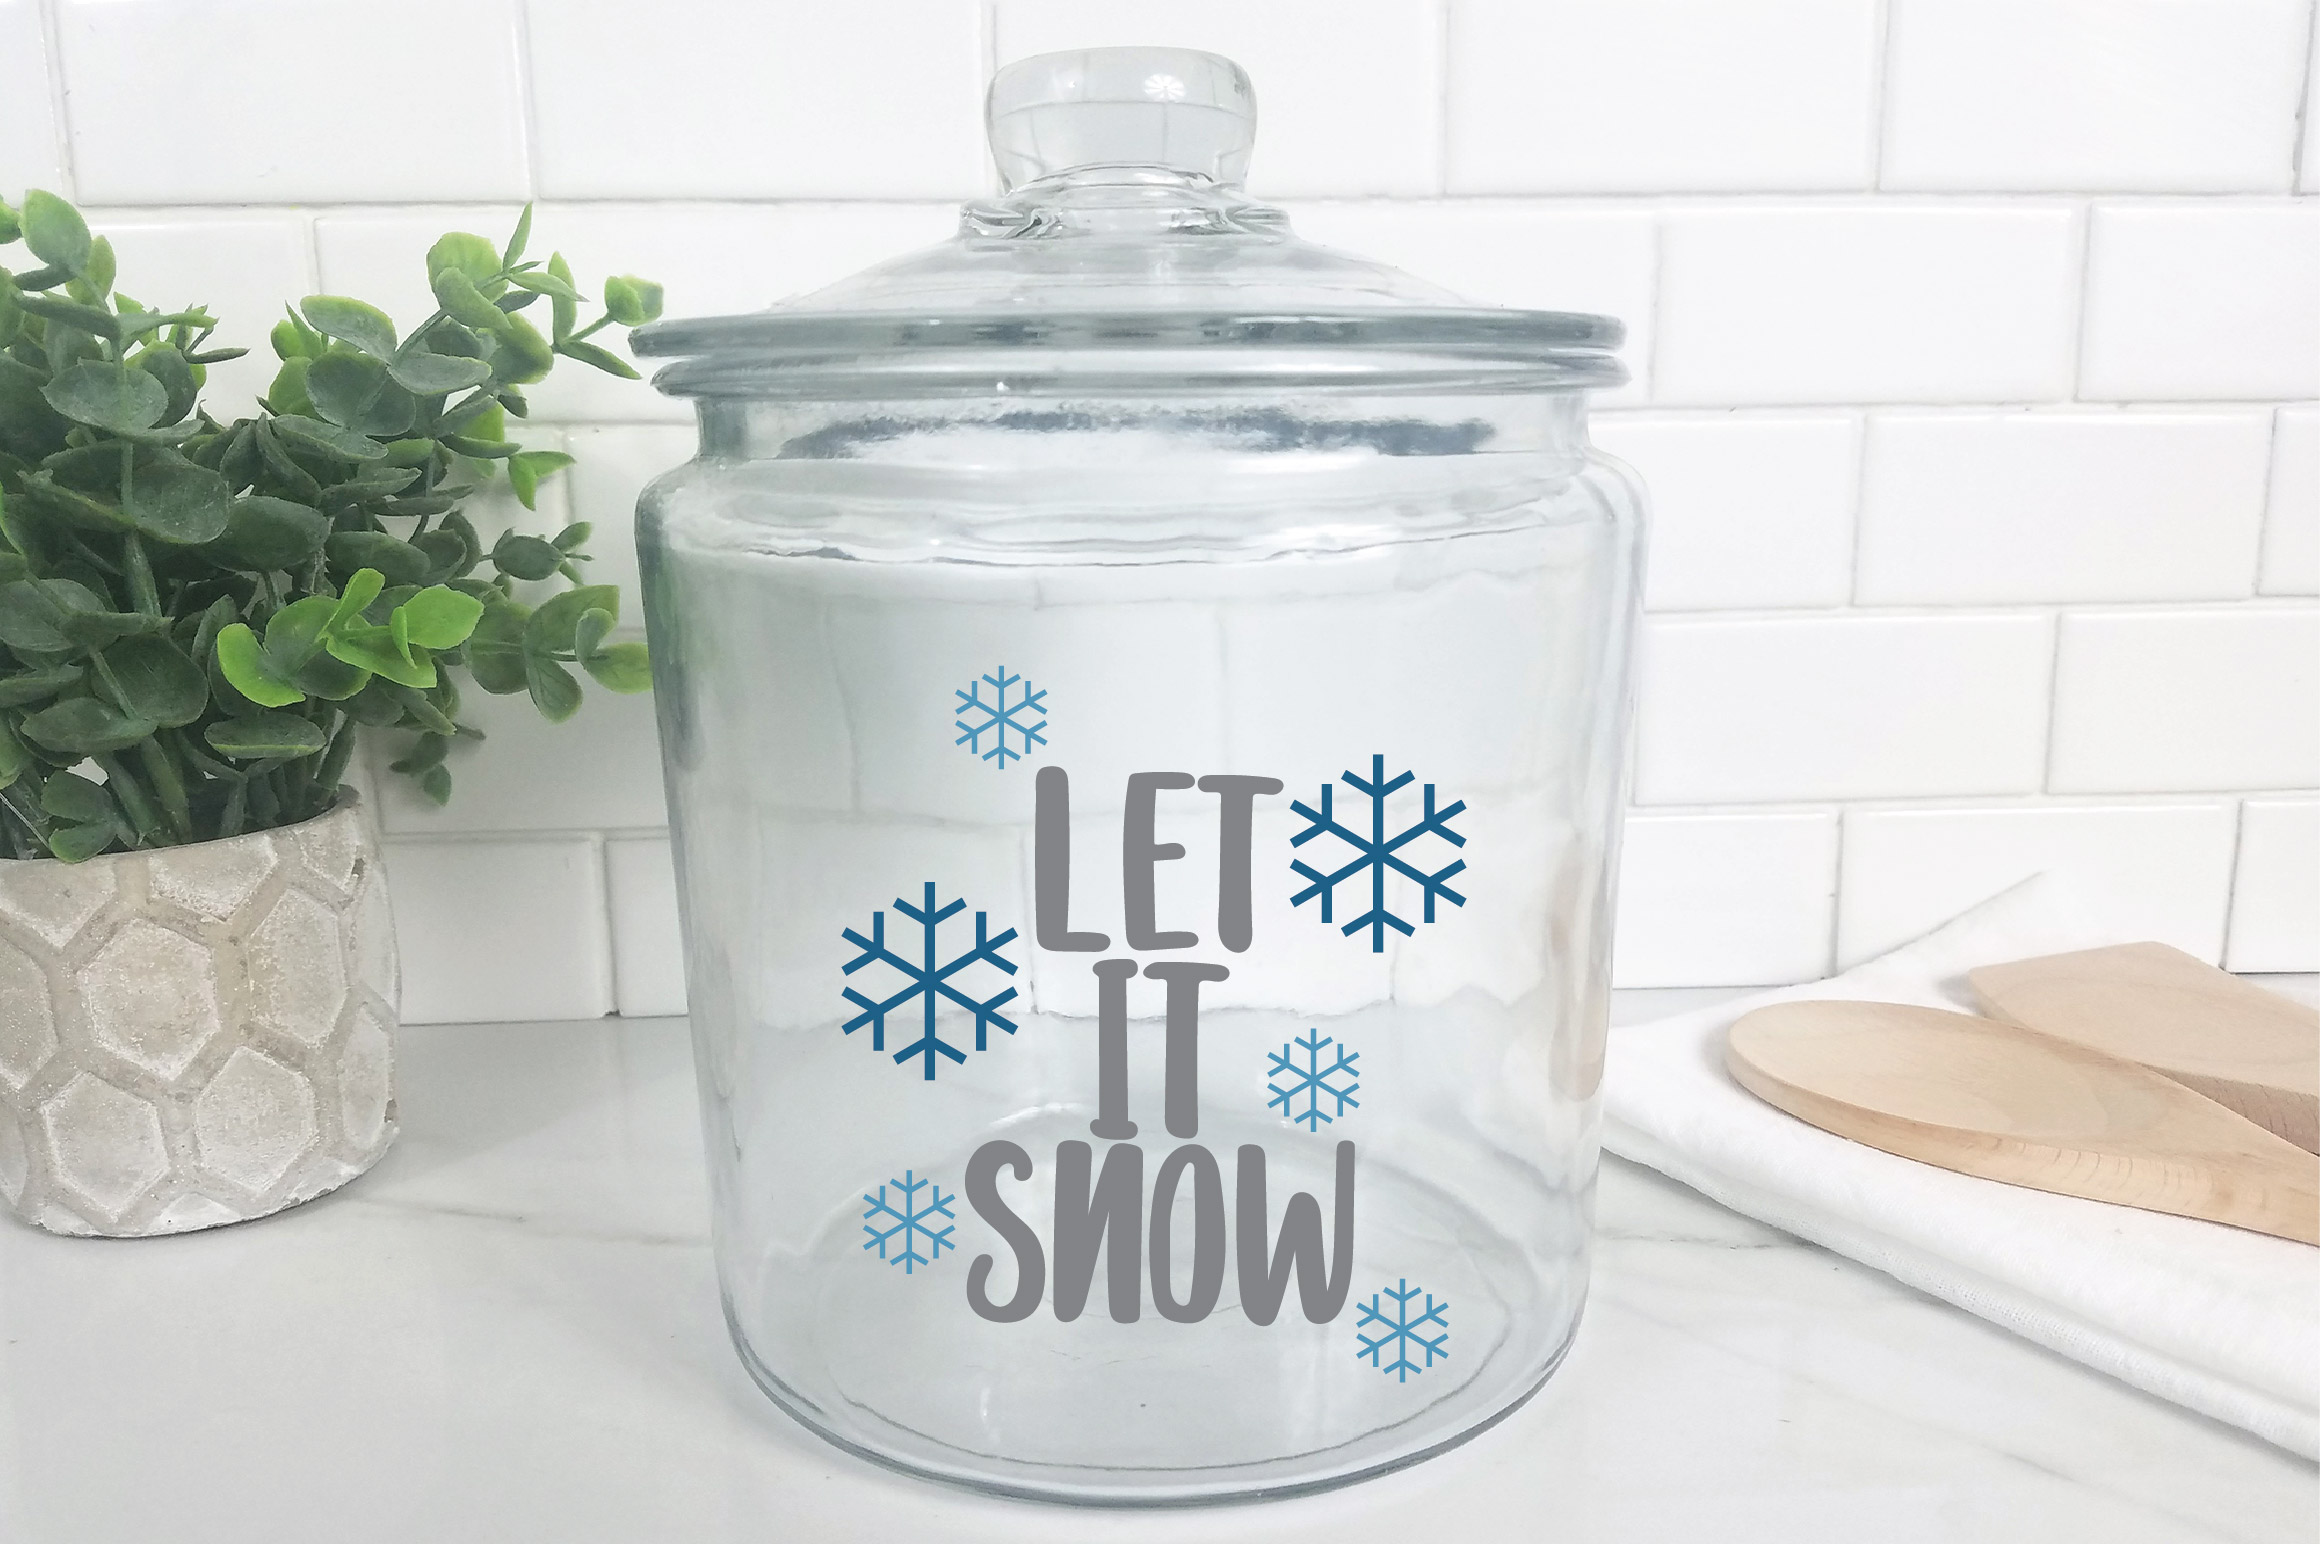 Let it Snow SVG Cut File - Christmas SVG example image 9